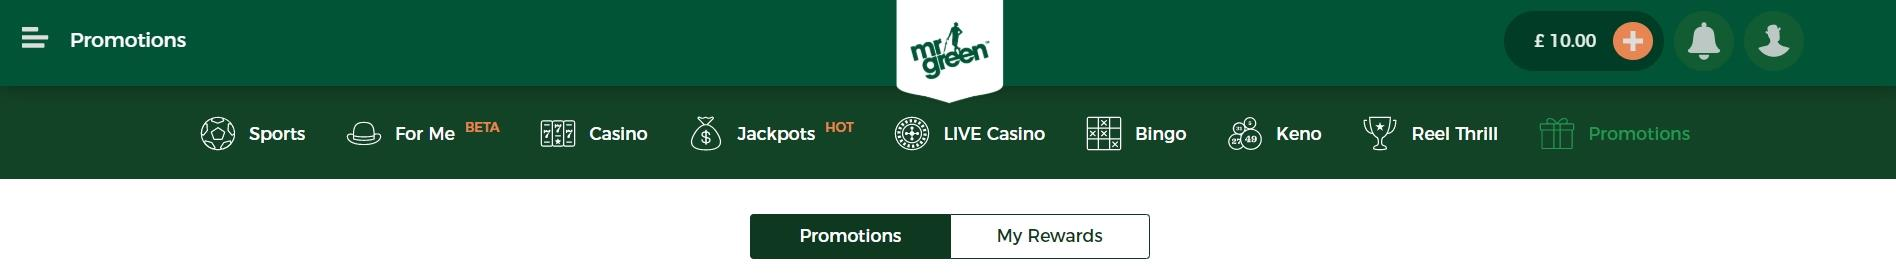 Mr Green Promotions button under site's main navigation bar